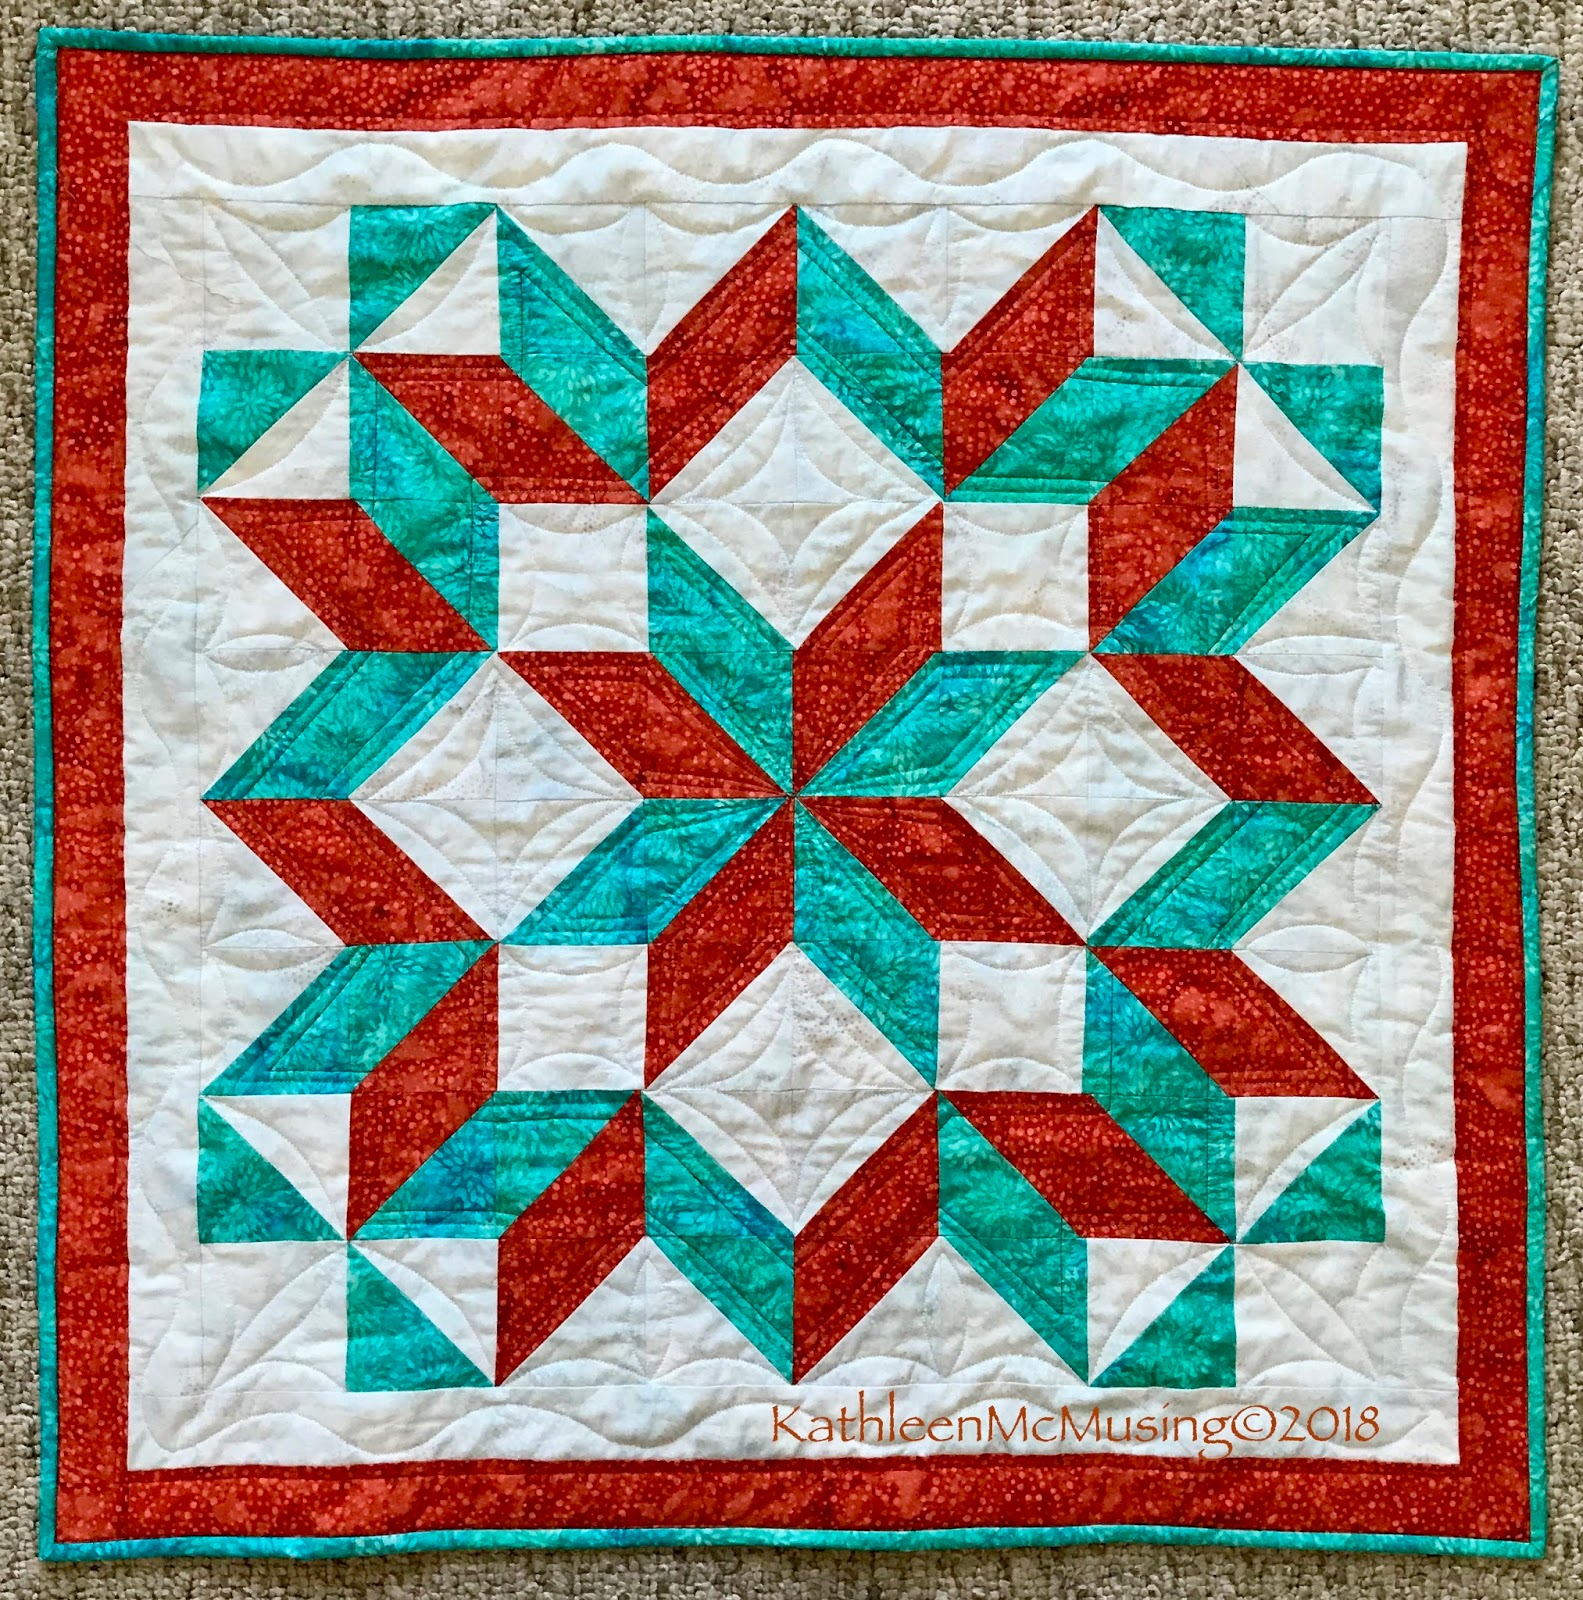 Looking Backa New Carpenter Star From A Vintage Quilt Kathleen